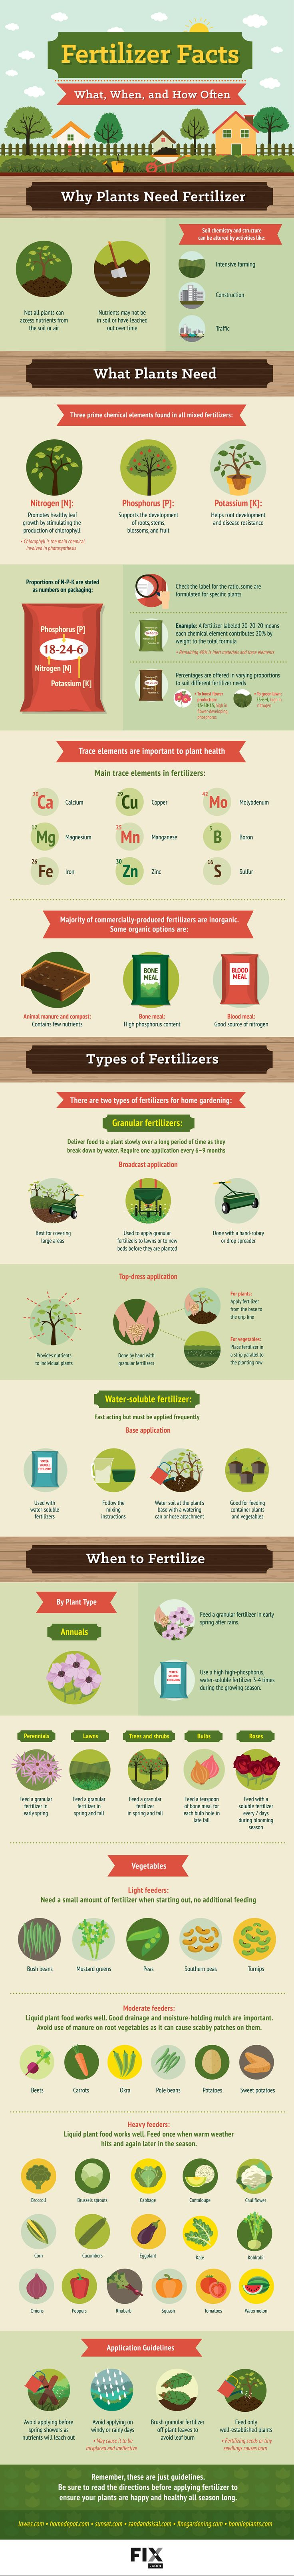 17 Best ideas about Garden Fertilizers on Pinterest Gardening